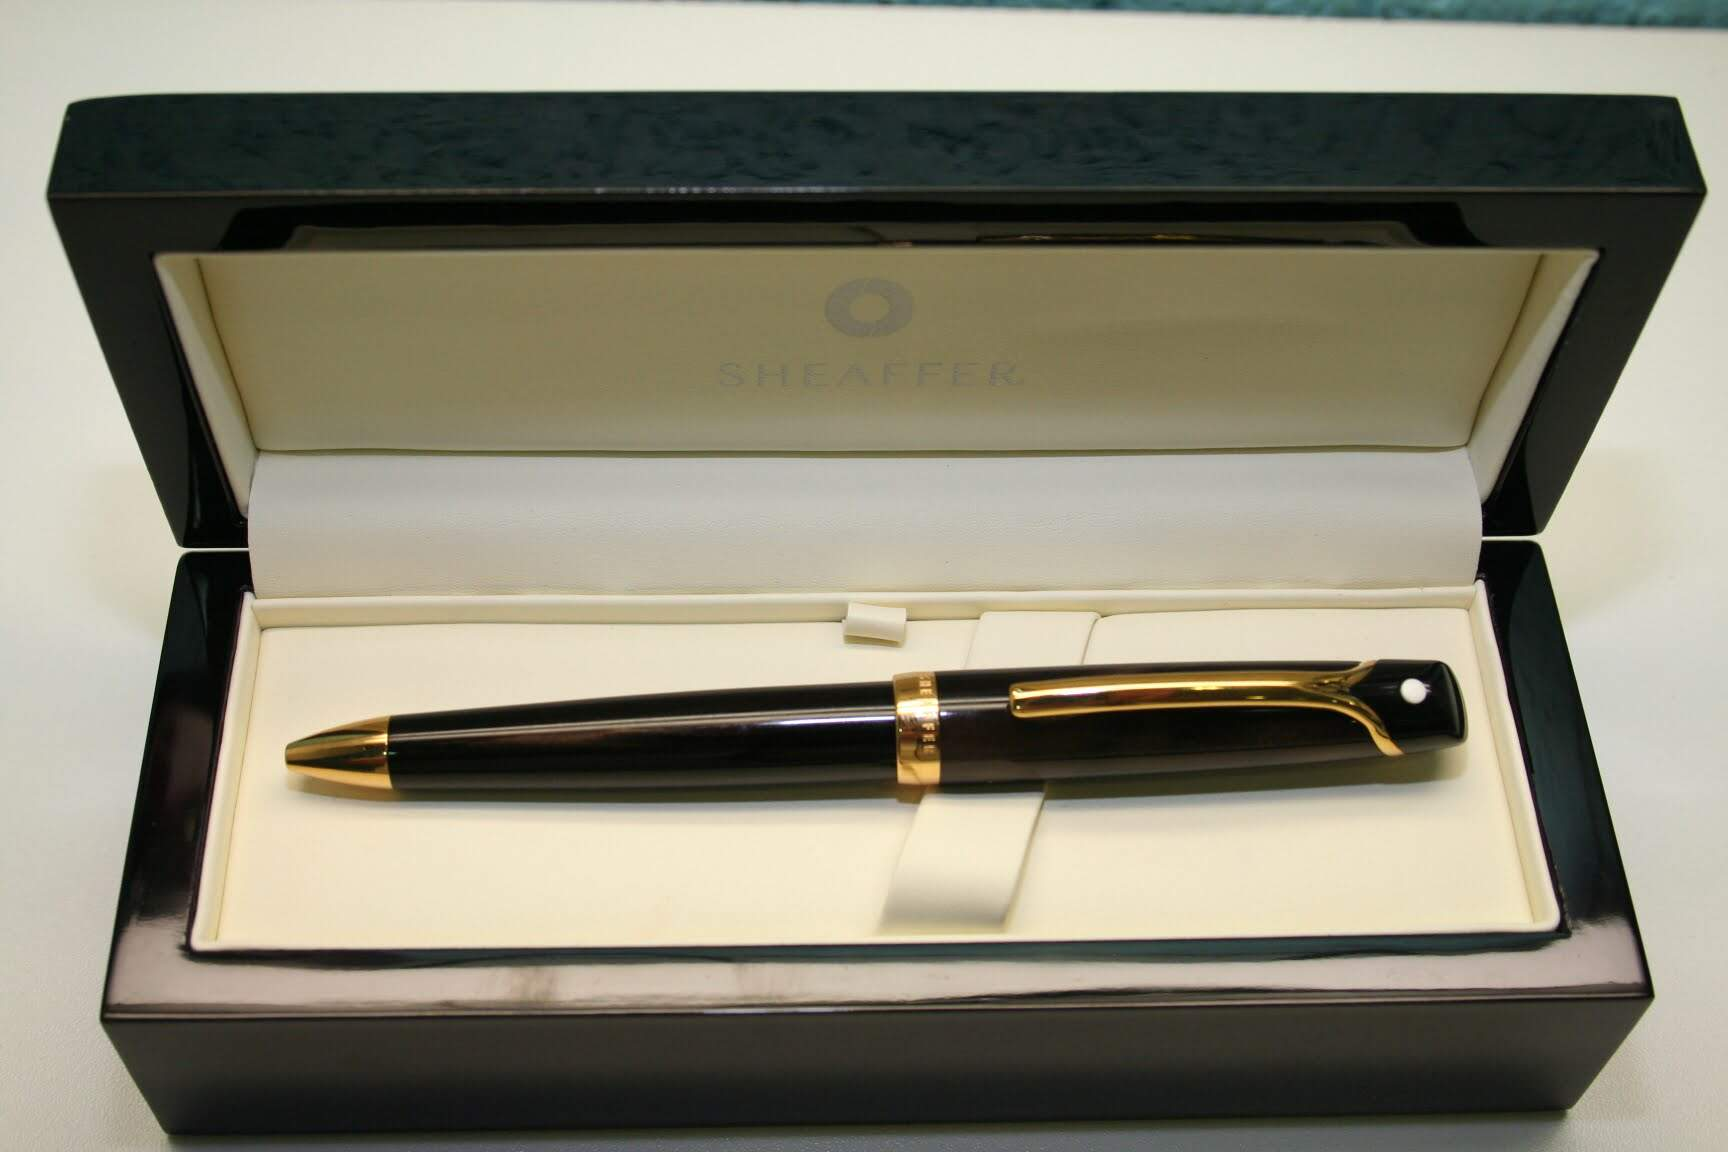 ESFERO SHEAFFER VALOR MARROM